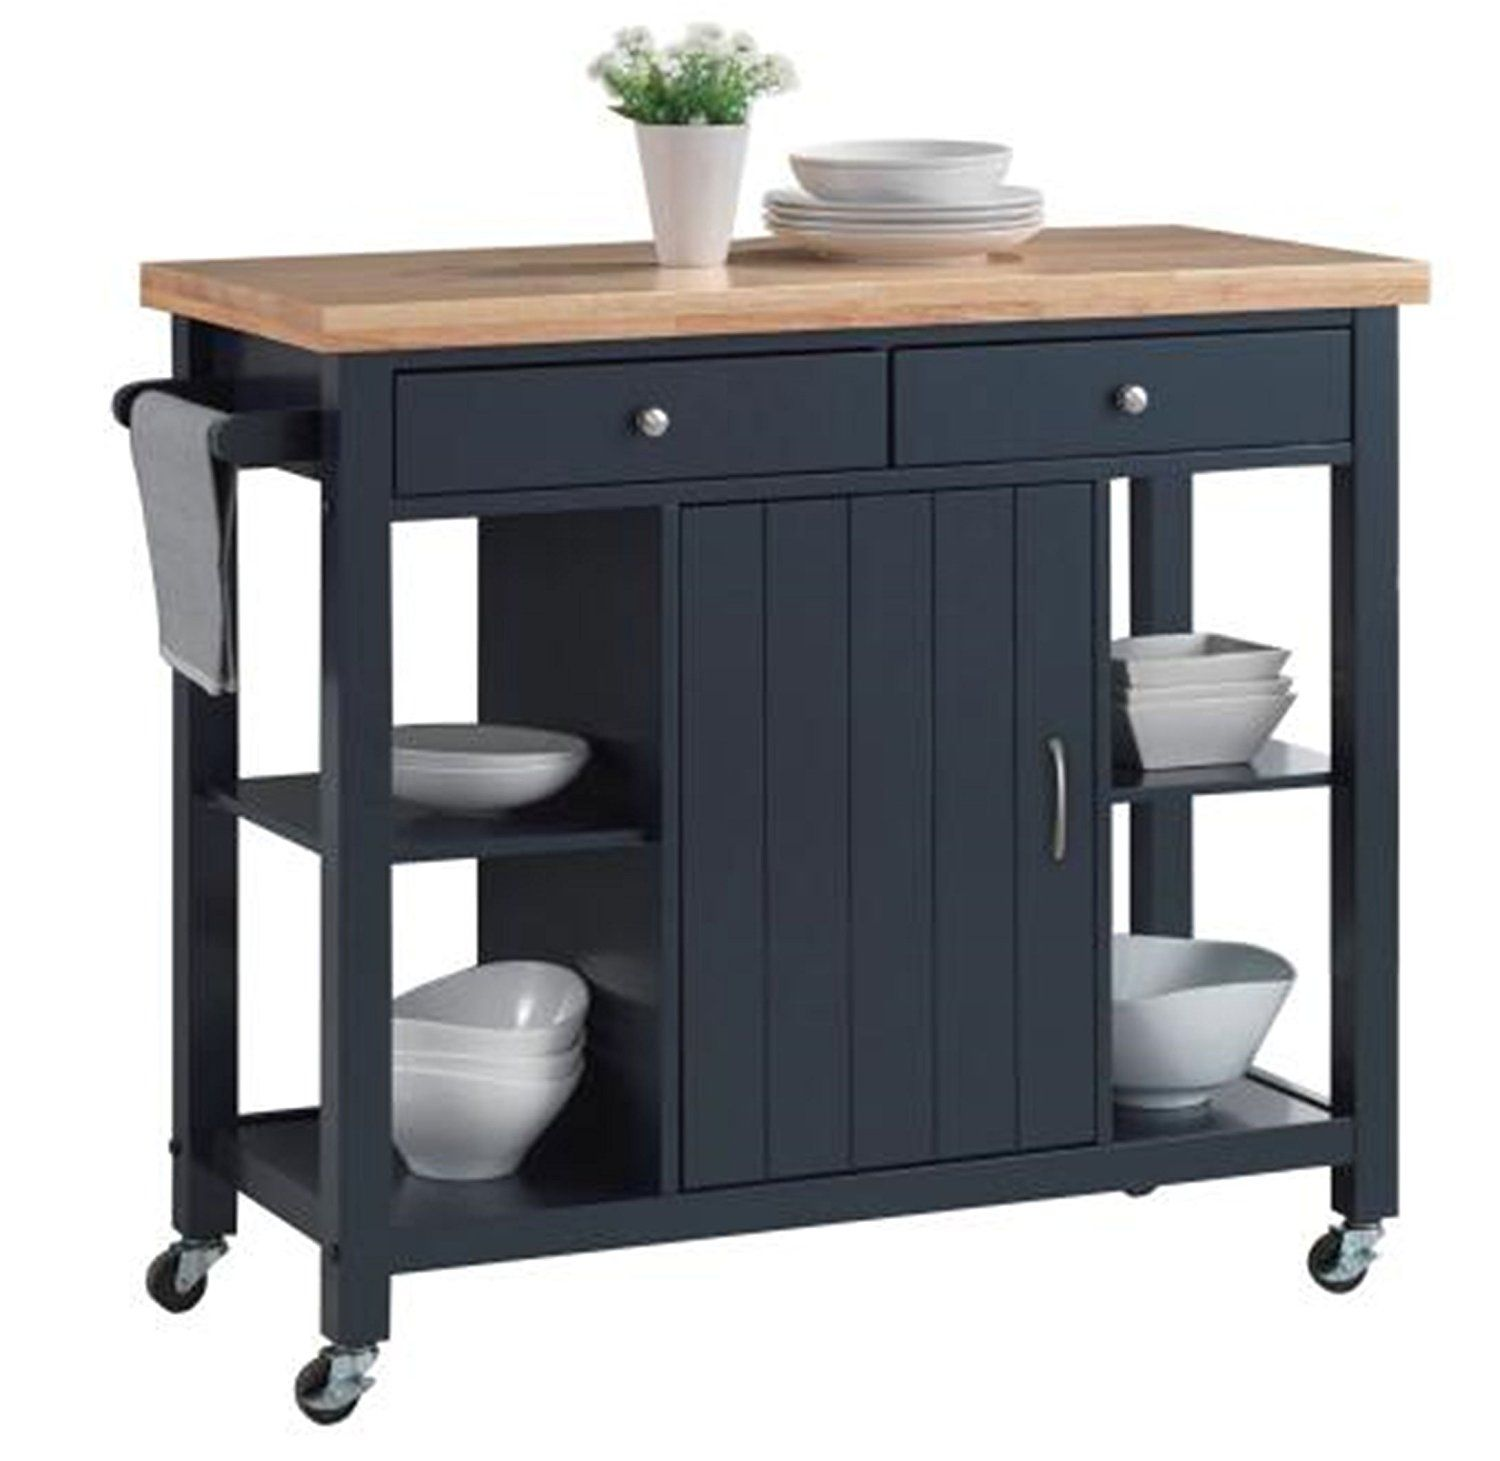 Amazon Com Oliver And Smith Nashville Collection Large Mobile Kitchen Island Mobile Kitchen Island Butcher Block Island Kitchen Kitchen Island On Wheels